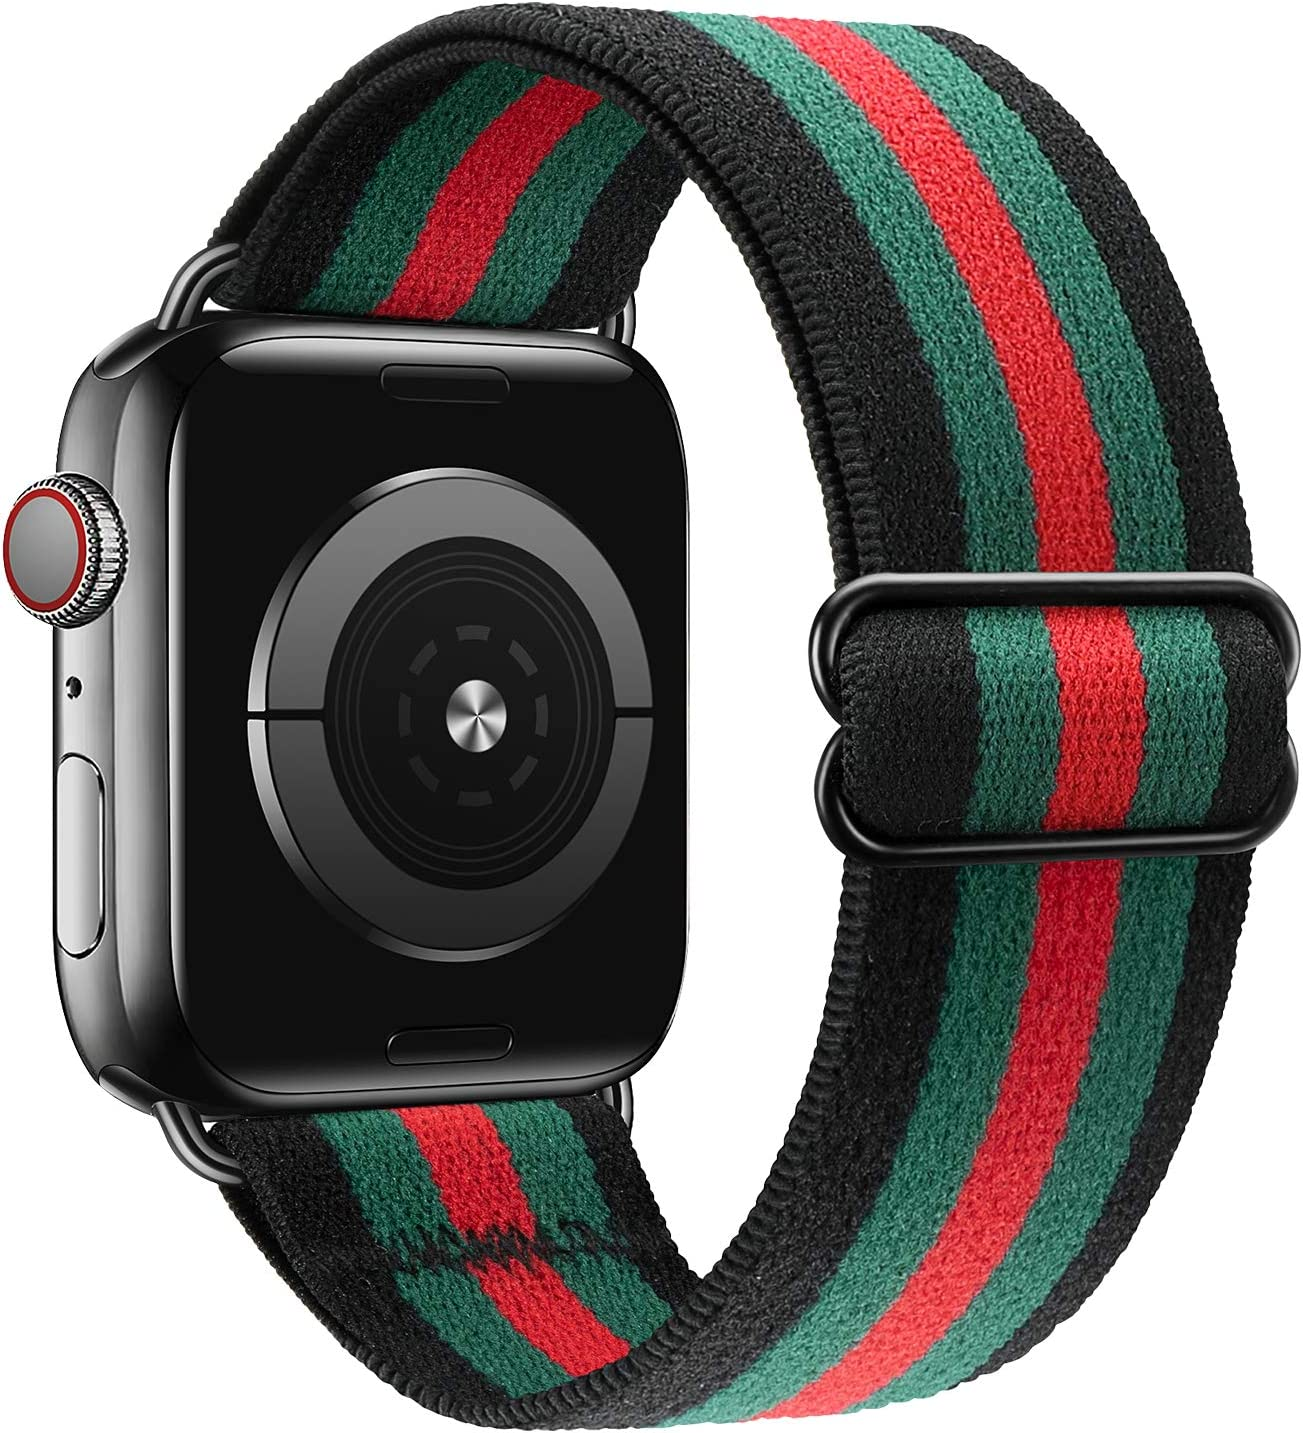 MEULOT Stretchy Braided Solo Loop Band Compatible with Apple Watch Band 38mm 40mm 42mm 44mm Adjustable Nylon Elastic Sport Women Men Strap Compatible with iWatch Series 6/5/4/3/2/1 SE BG Stripe 42/44L